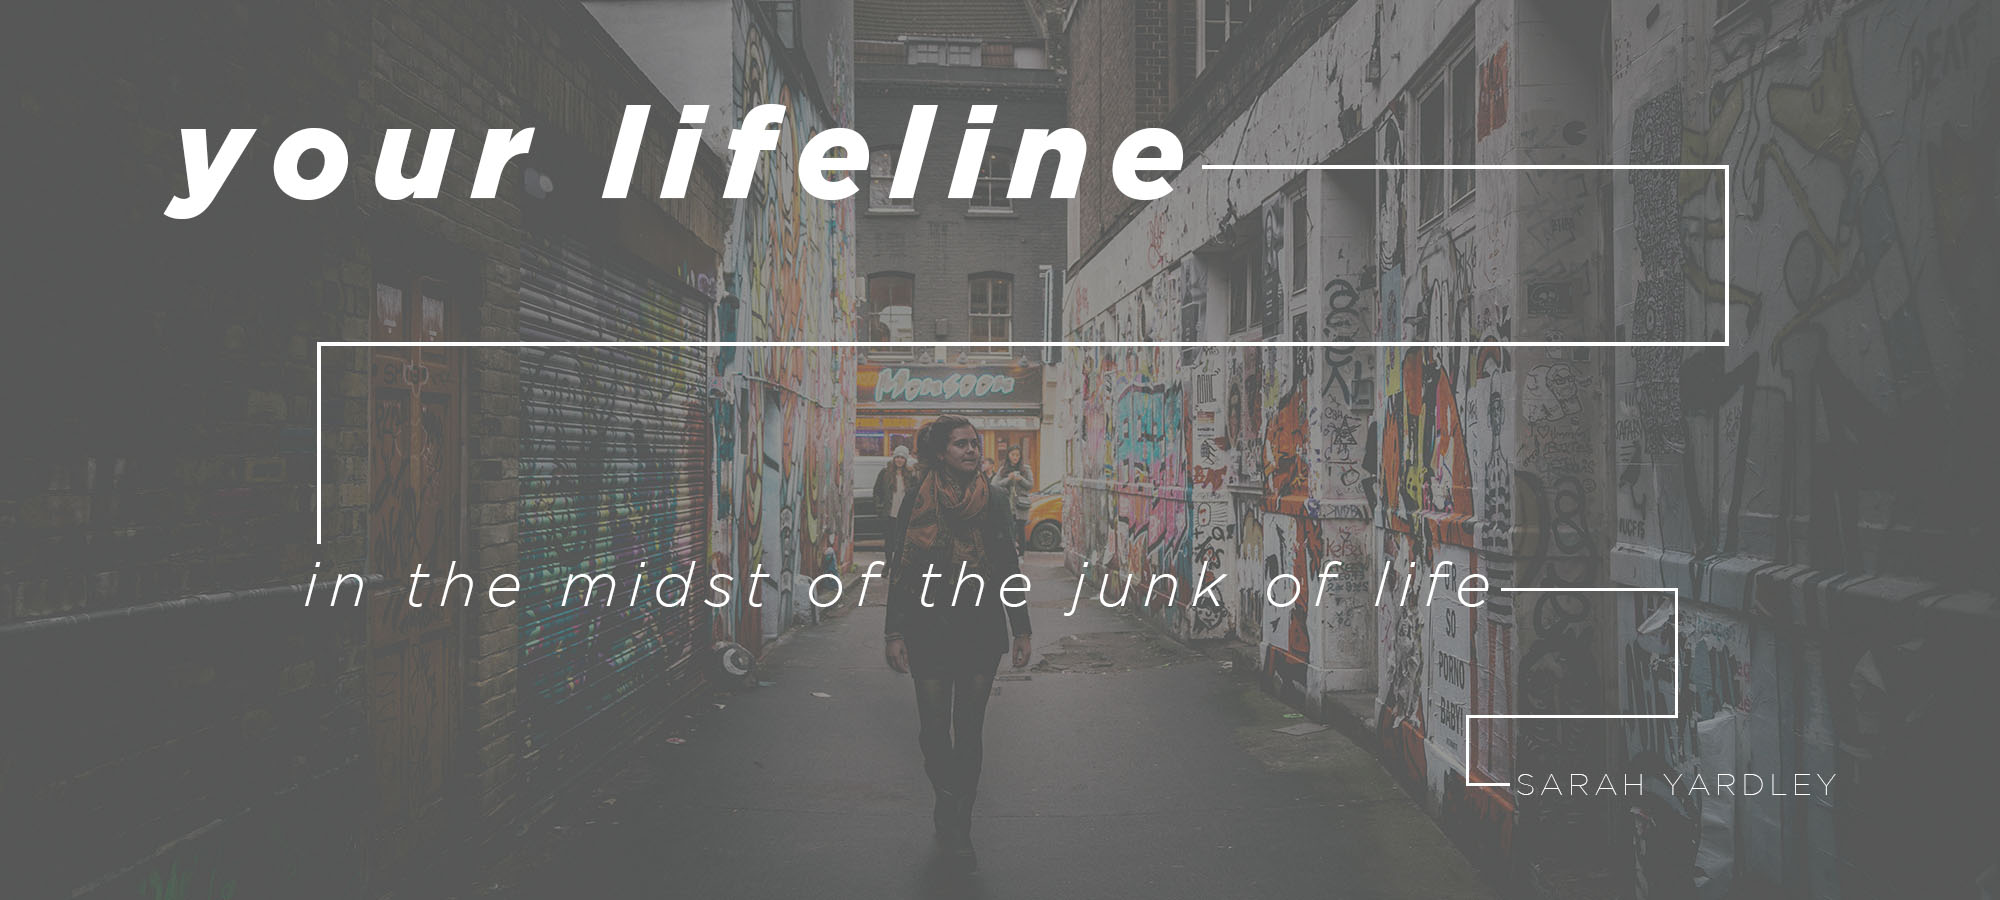 Your Lifeline in the Midst of the Junk of Life